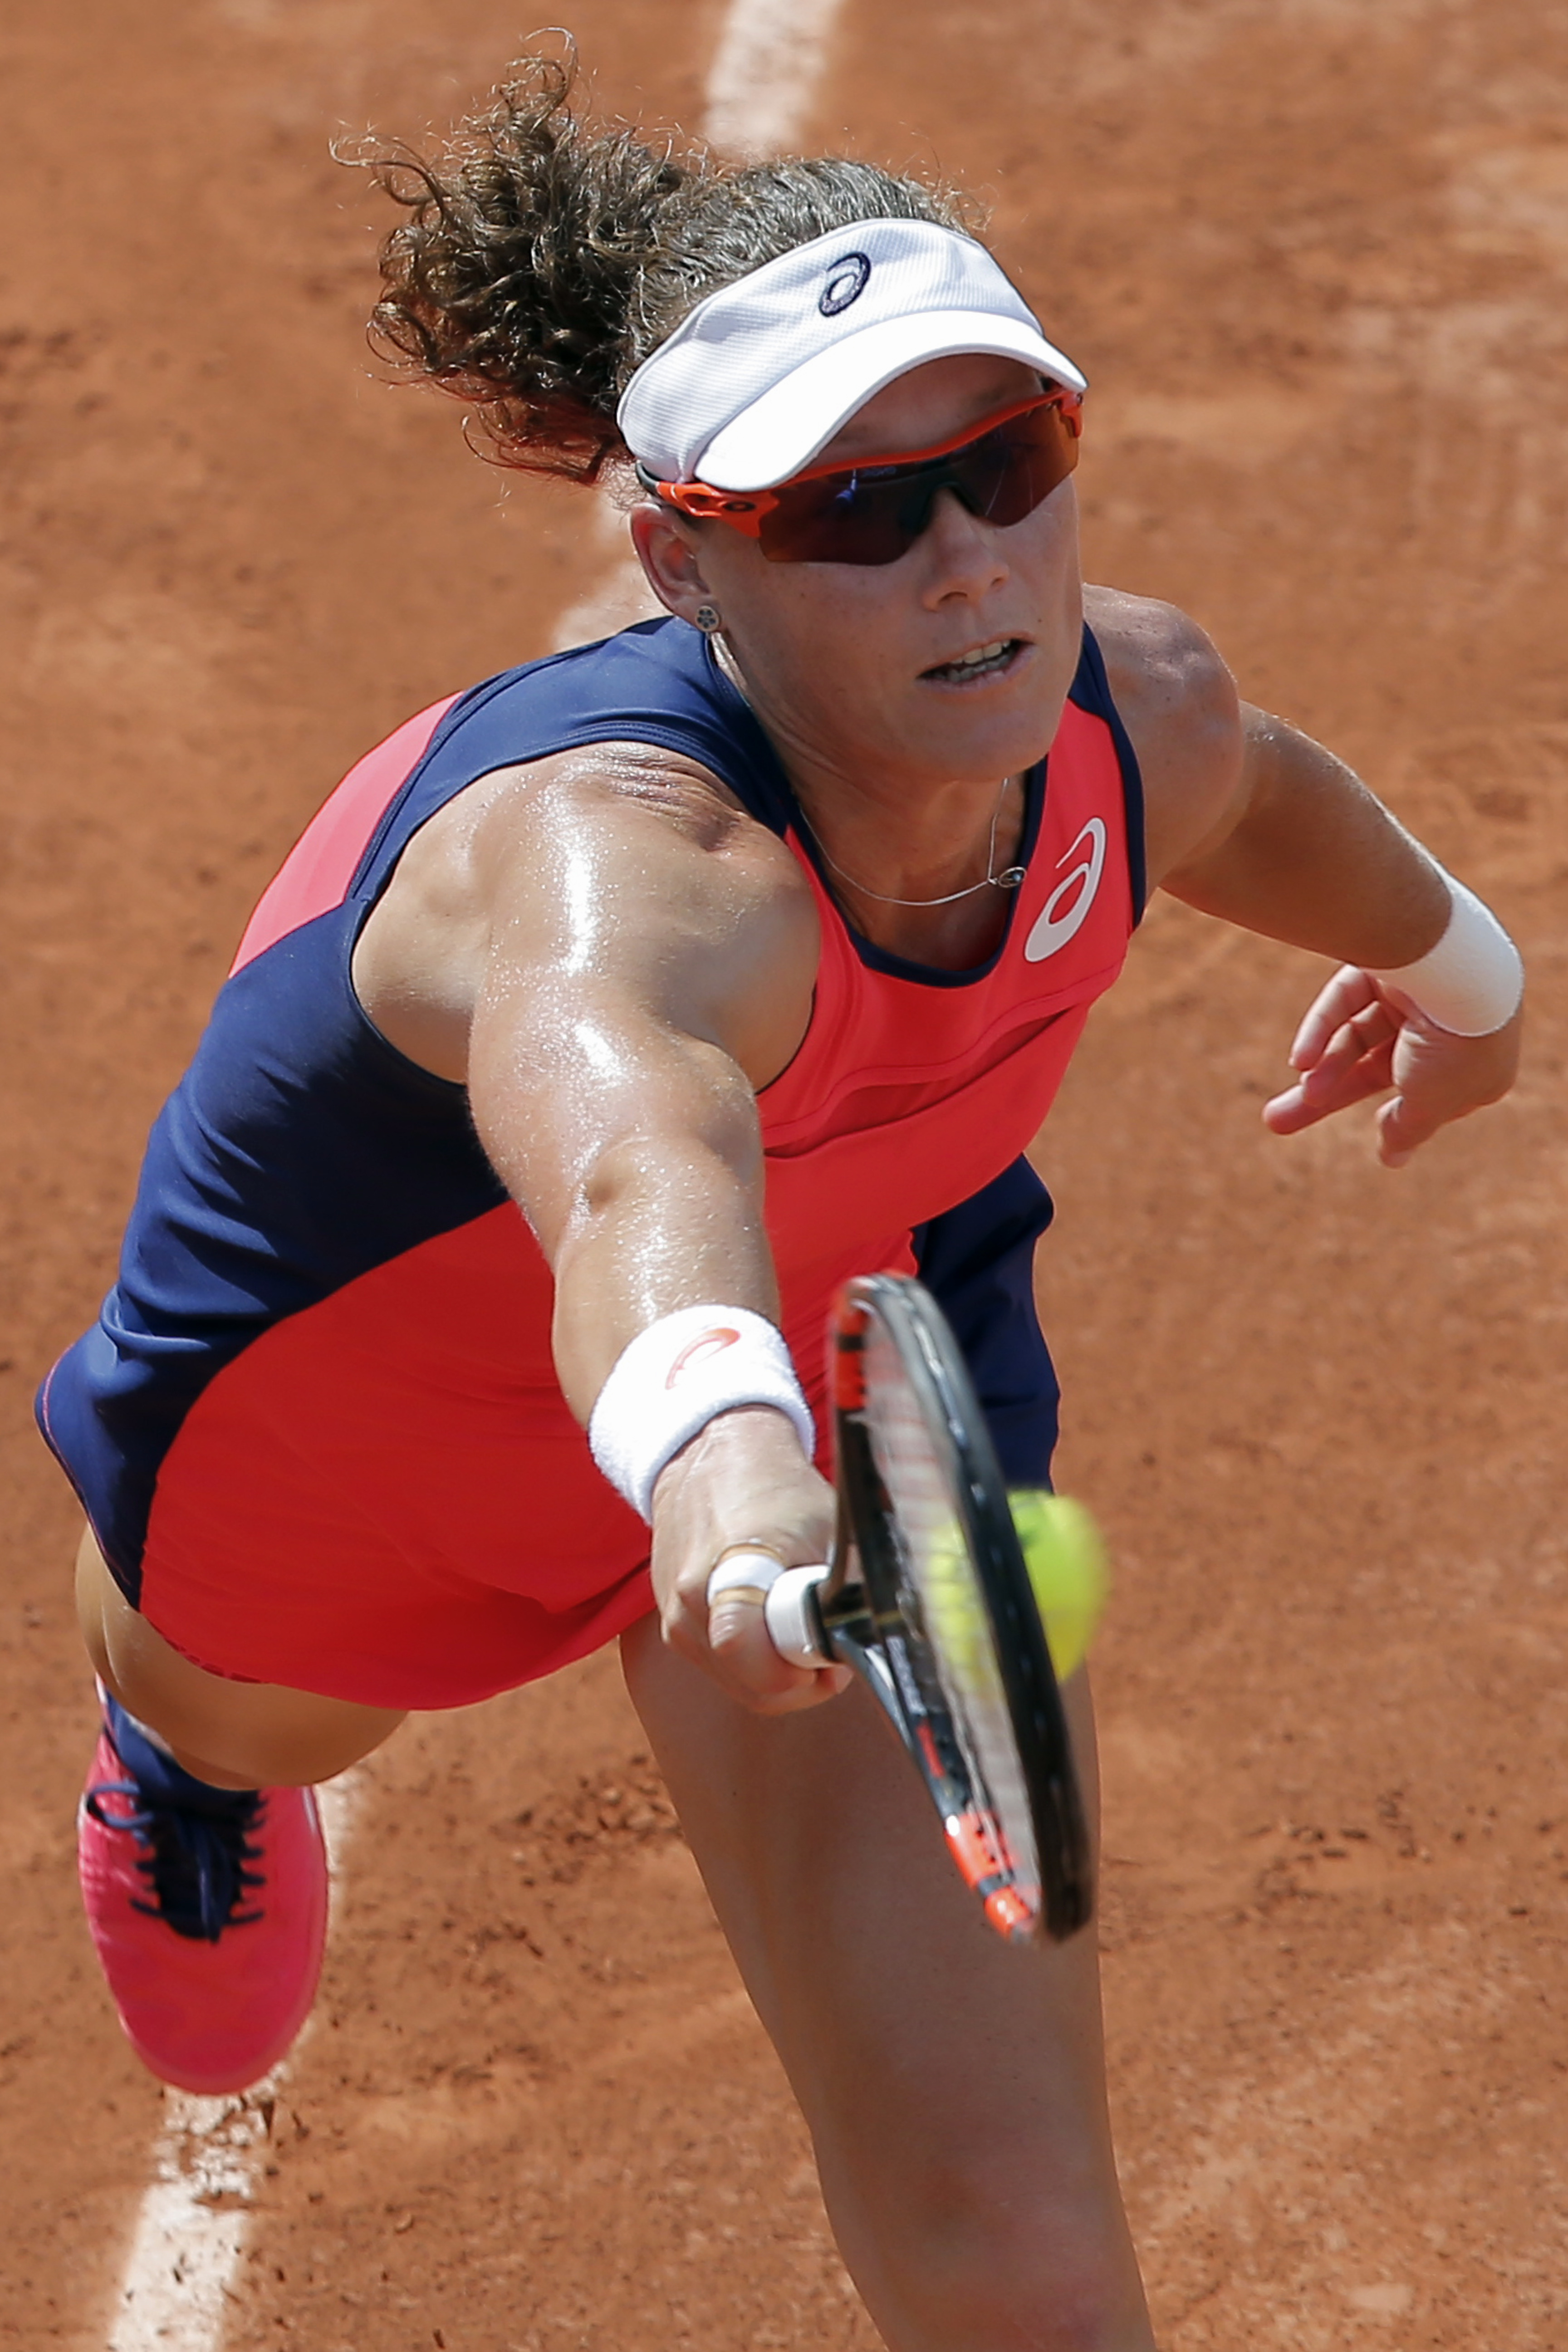 Australia's Samantha Stosur reaches for the ball as she plays Slovakia's Kristina Kucova during their first round match of the French Open tennis tournament at the Roland Garros stadium, Monday, May 29, 2017 in Paris. (AP Photo/Michel Euler)